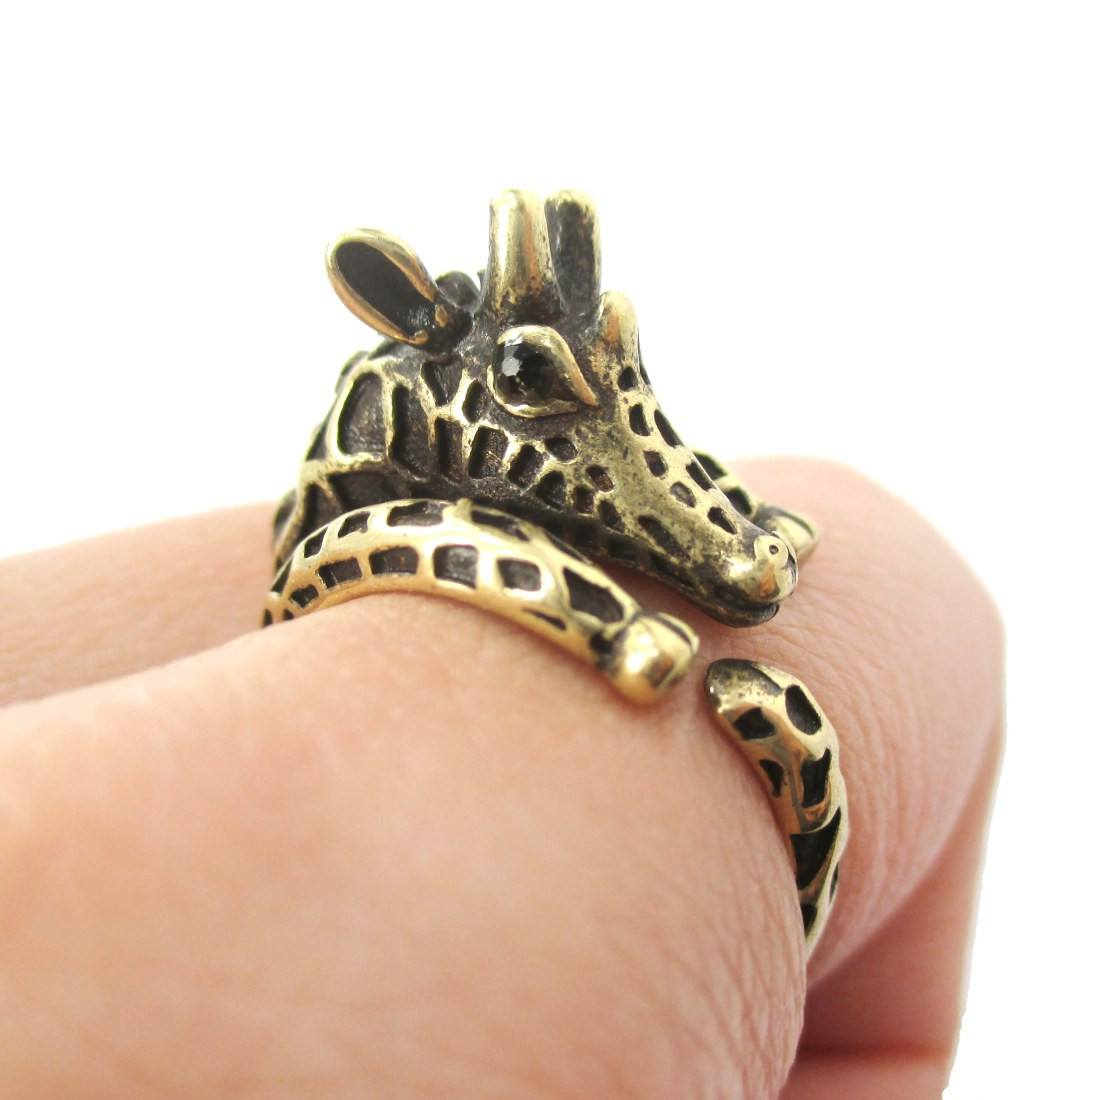 Detailed Giraffe Shaped Spotted Animal Wrap Ring in Brass | DOTOLY